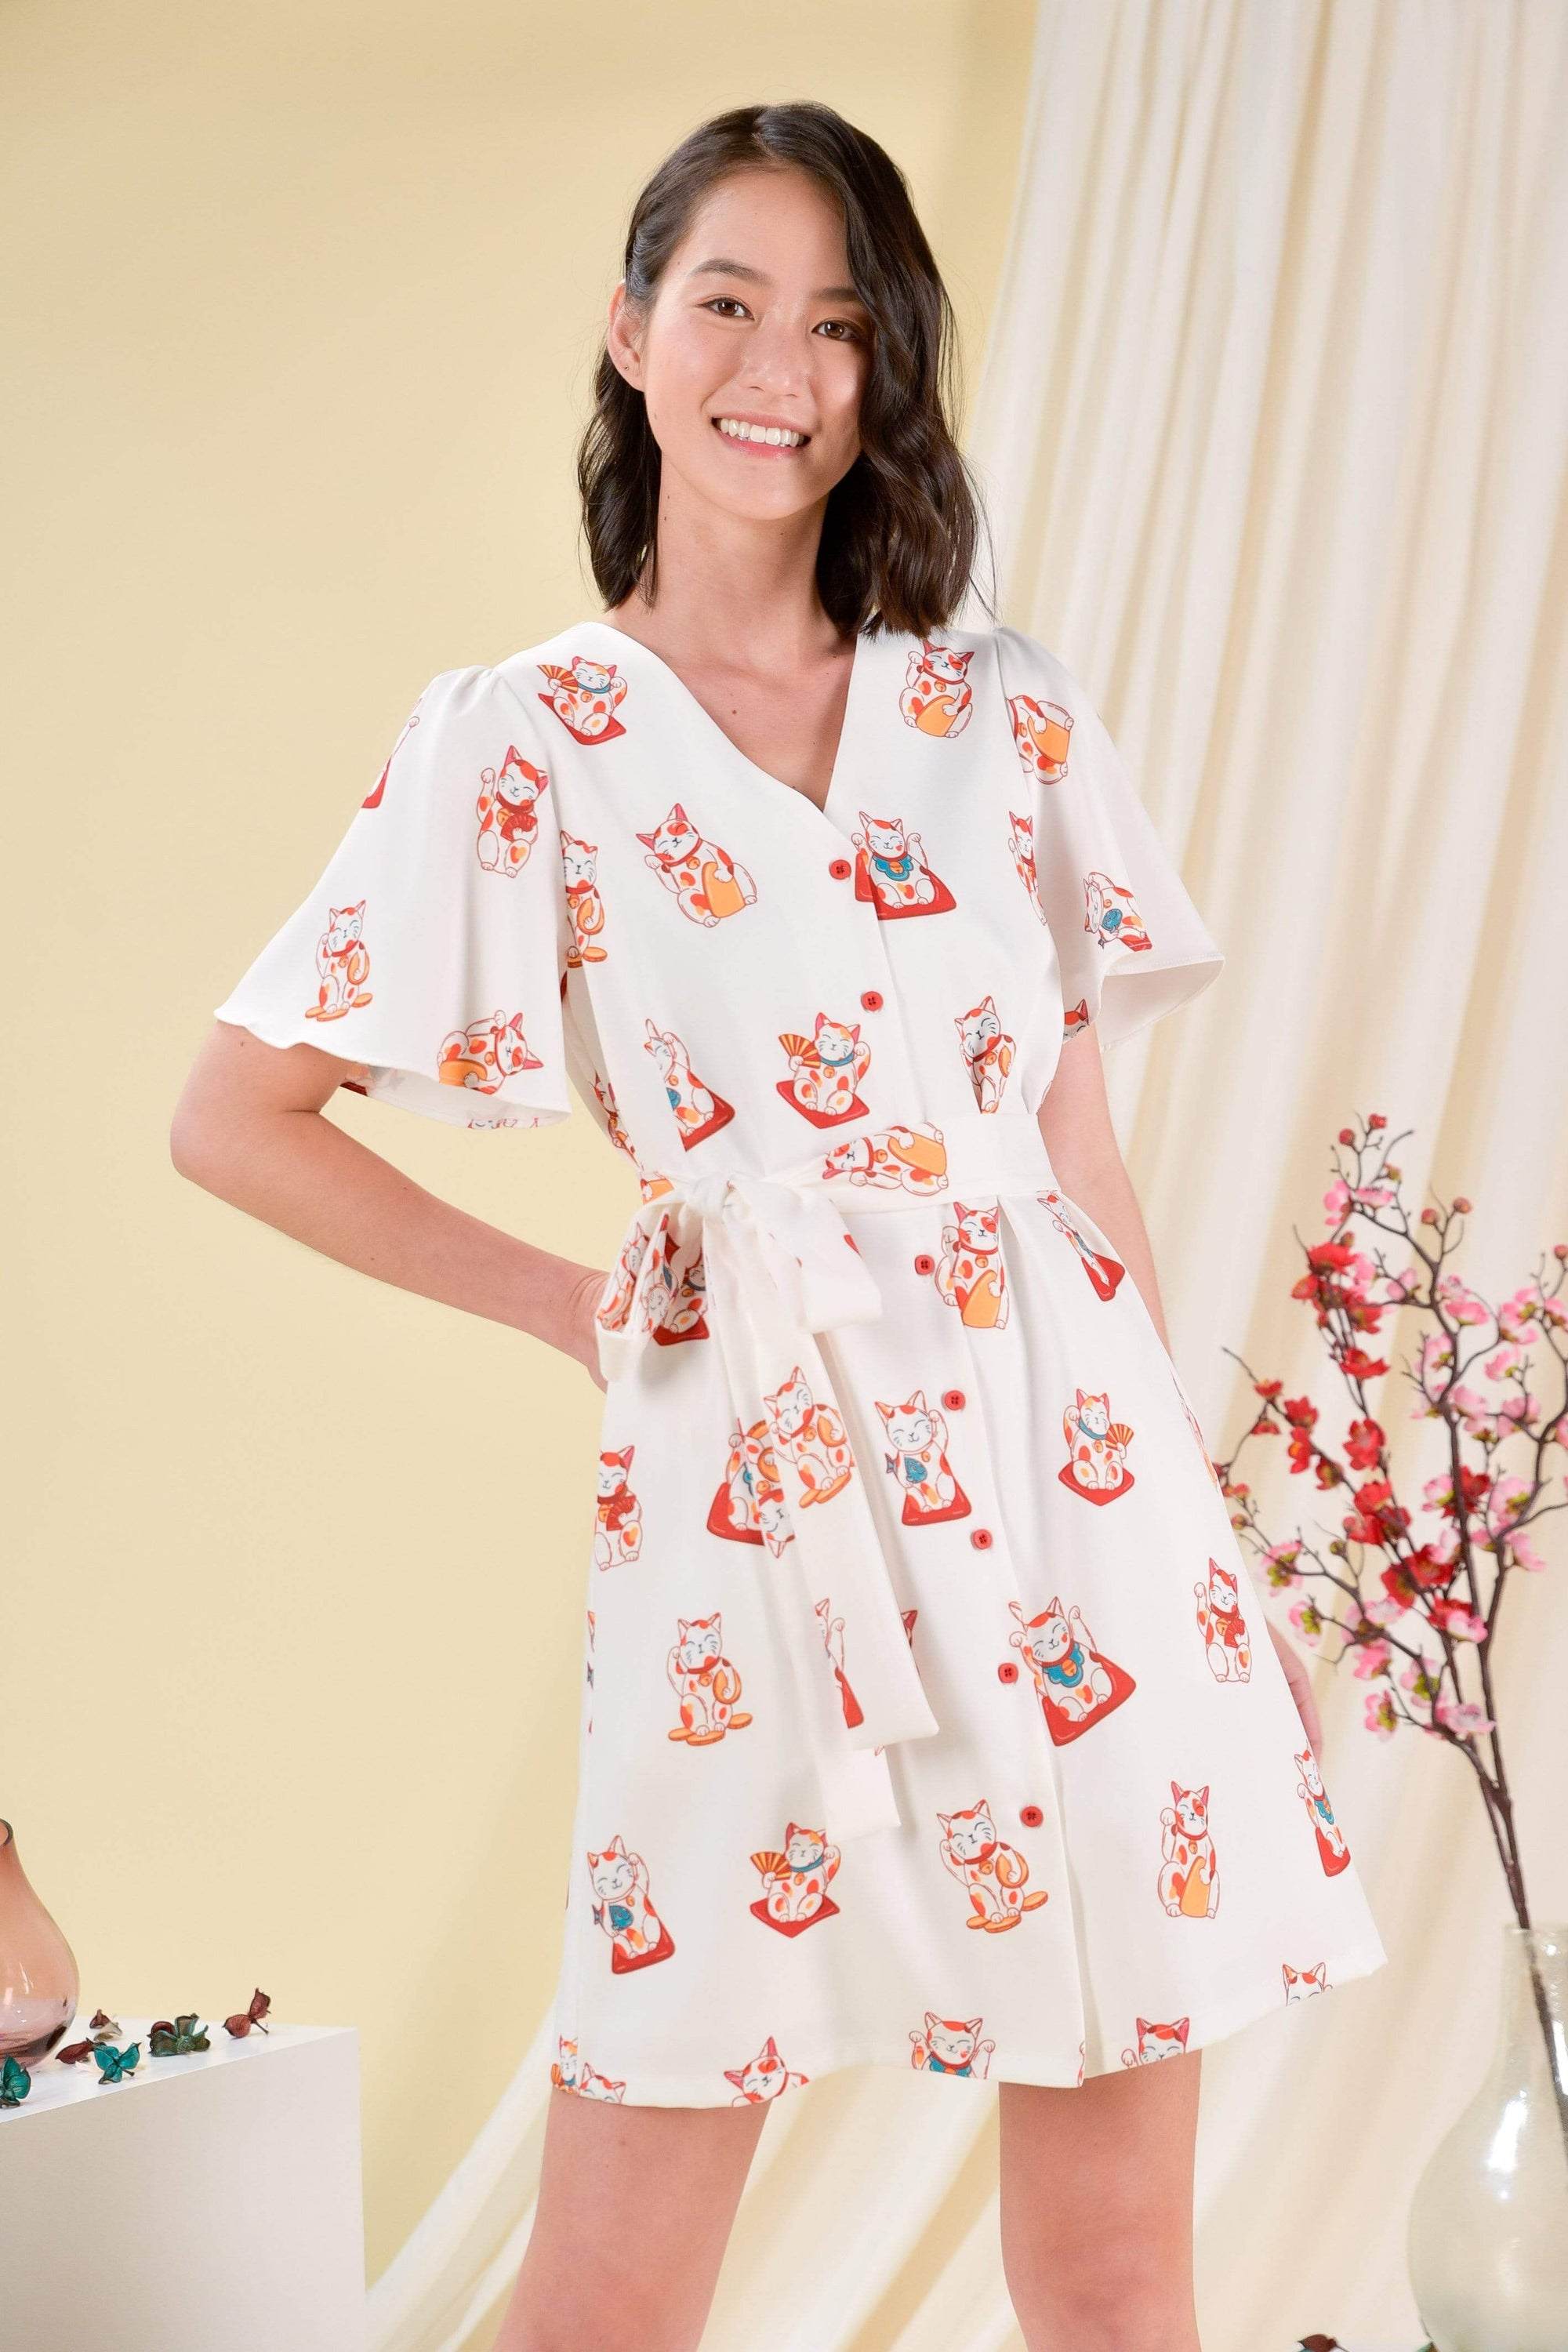 FORTUNE CAT SLEEVED DRESS